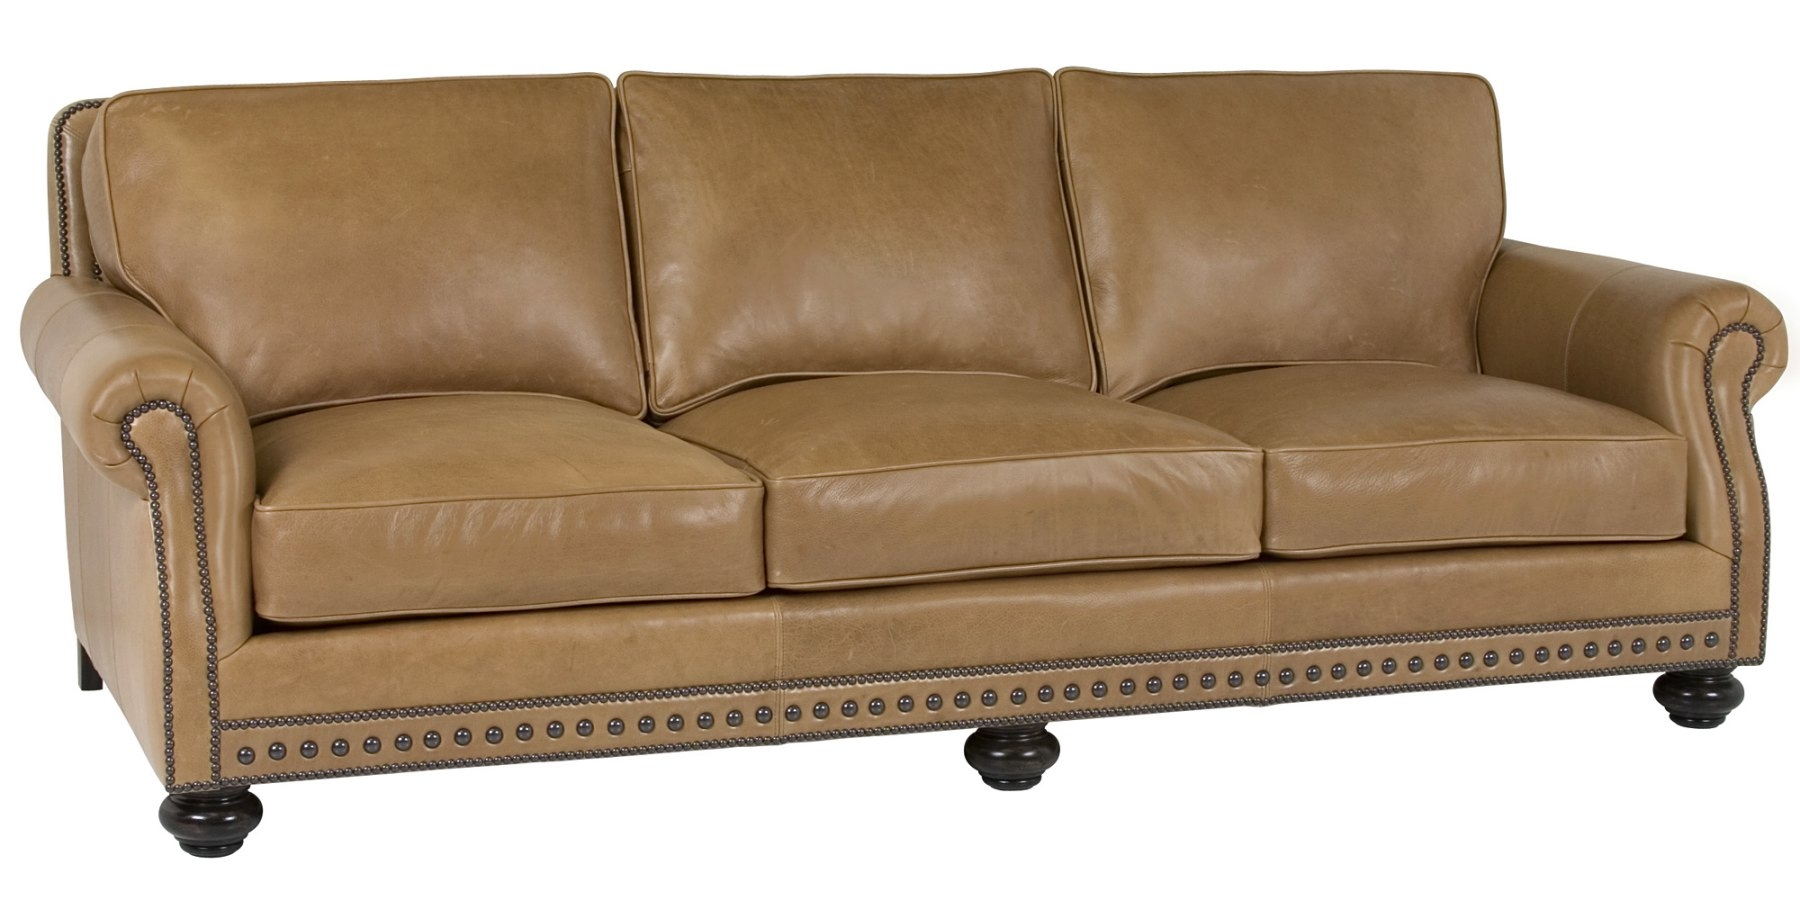 Featured Image of Traditional Leather Couch